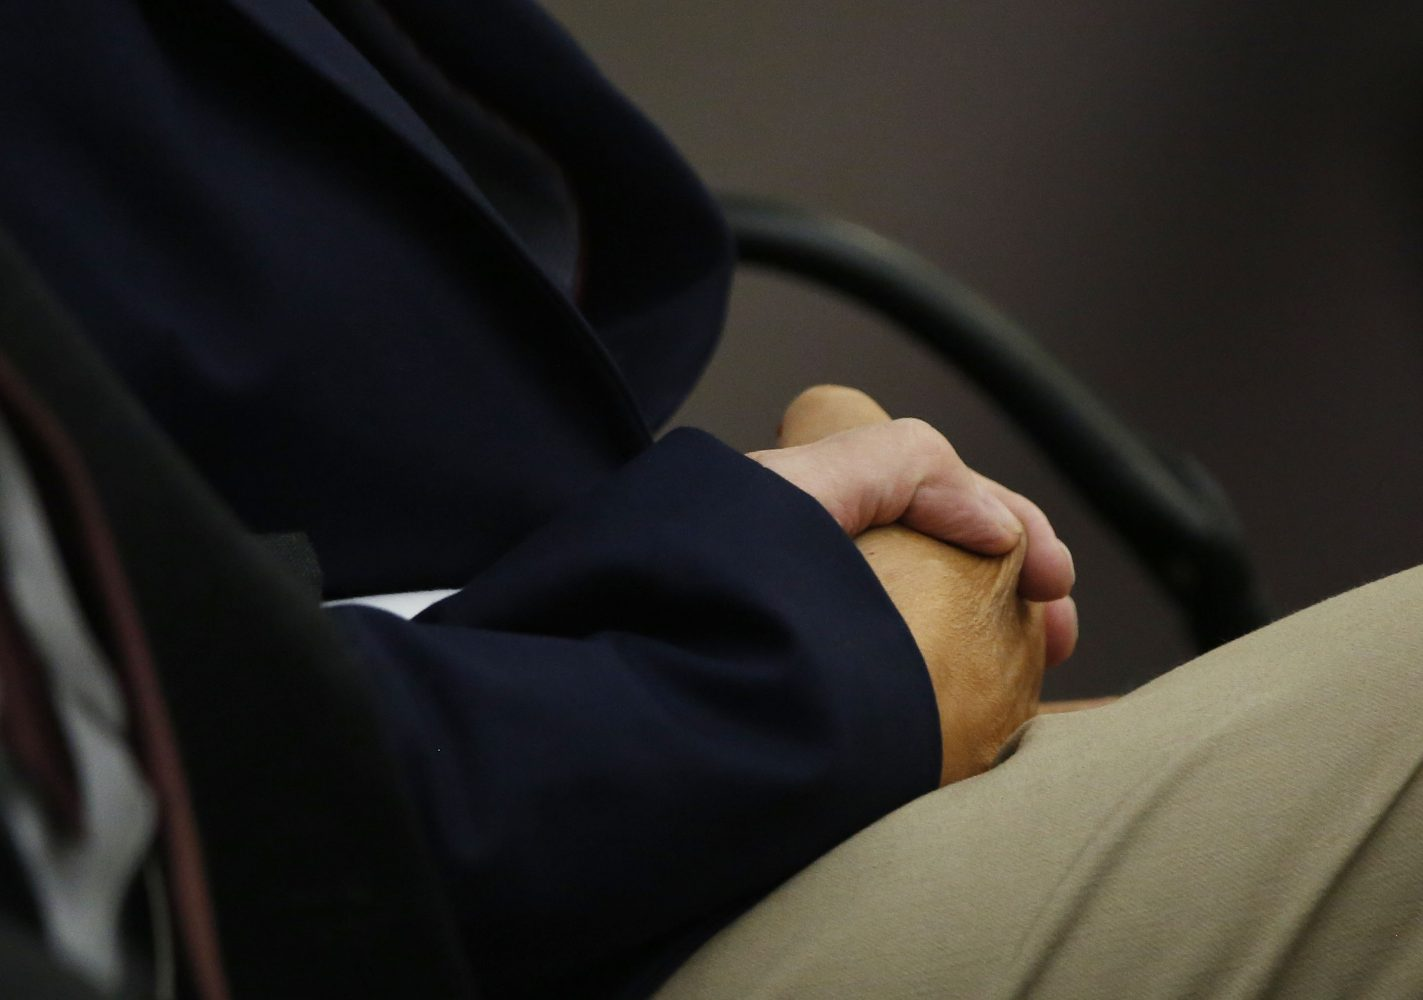 Pedro Bravo's parents, Pedro Bravo and Azucena Duque, hold hands before the jury verdict is read to their son in courtroom 1B of the Alachua County Criminal Justice Center Friday, August 15, 2014.  Bravo is accused of killing University of Florida student Christian Aguilar.  (Doug Finger/The Gainesville Sun/Pool)